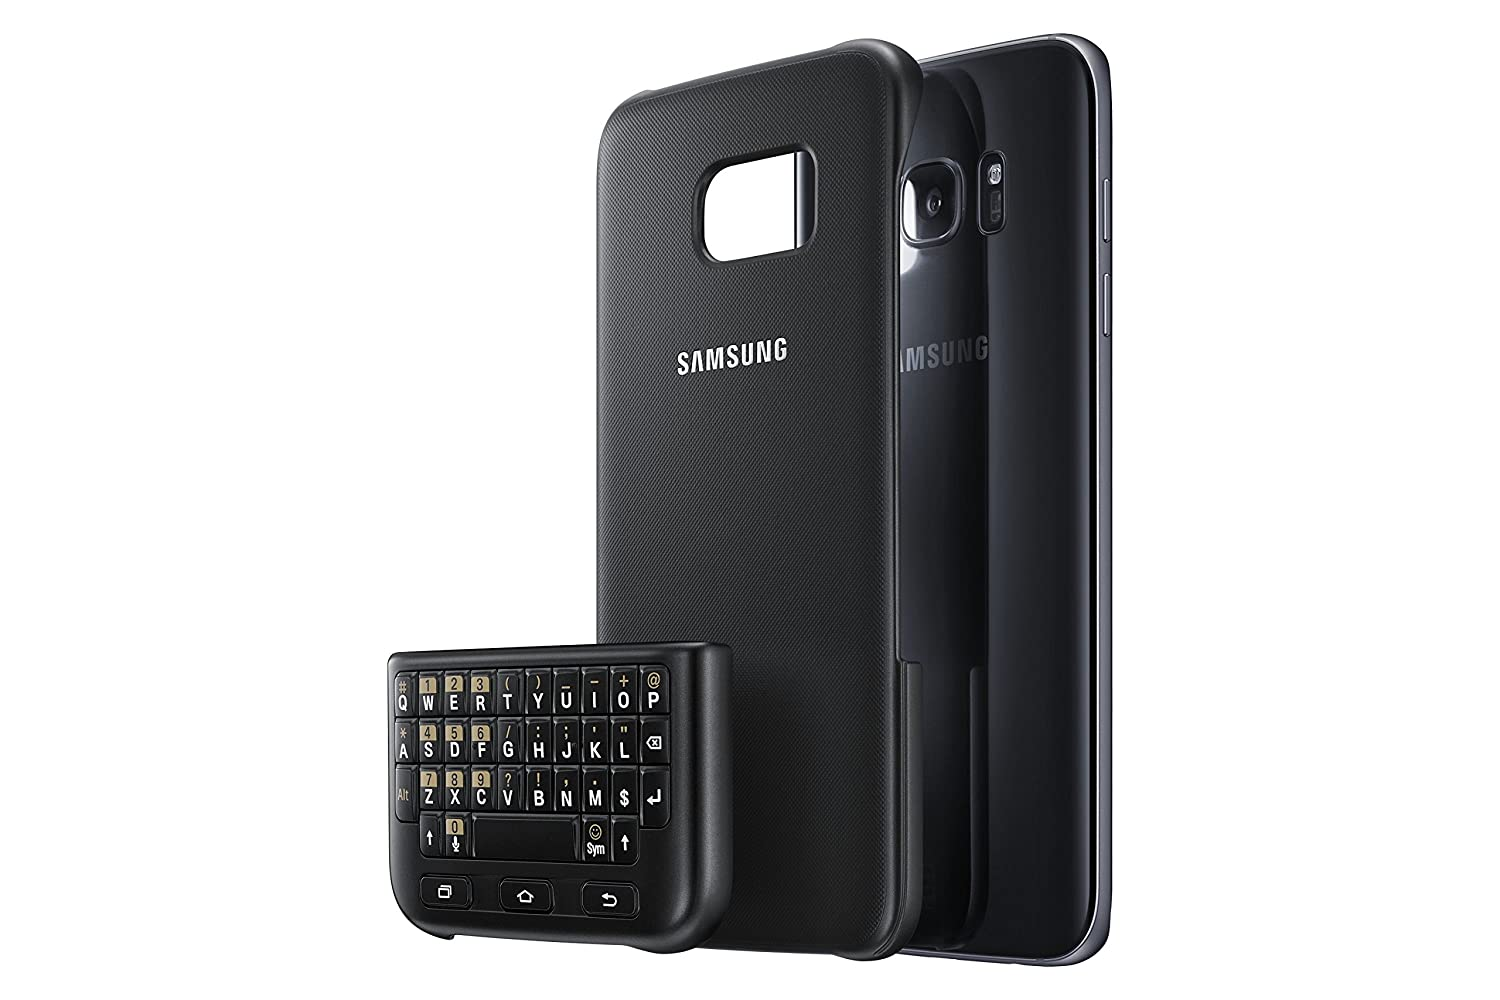 Amazon.com  Samsung Galaxy S7 edge Keyboard Cover - Black  Cell Phones    Accessories a9e9d564a722